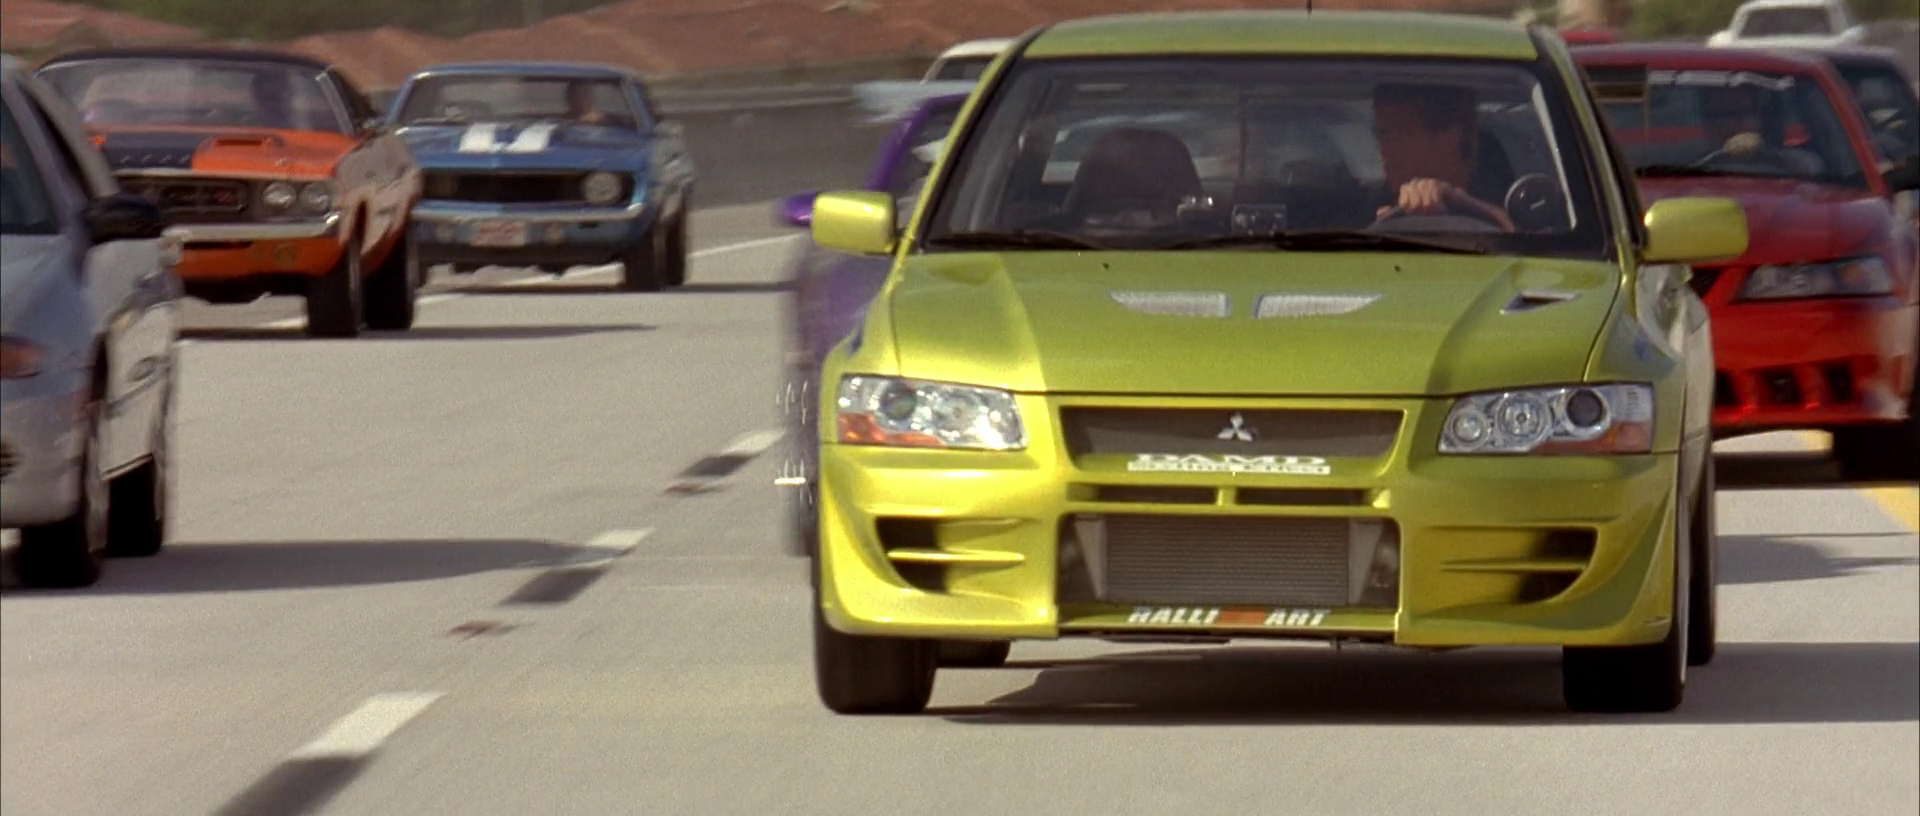 Image - Lancer Evo VII - Front View.png | The Fast and the Furious